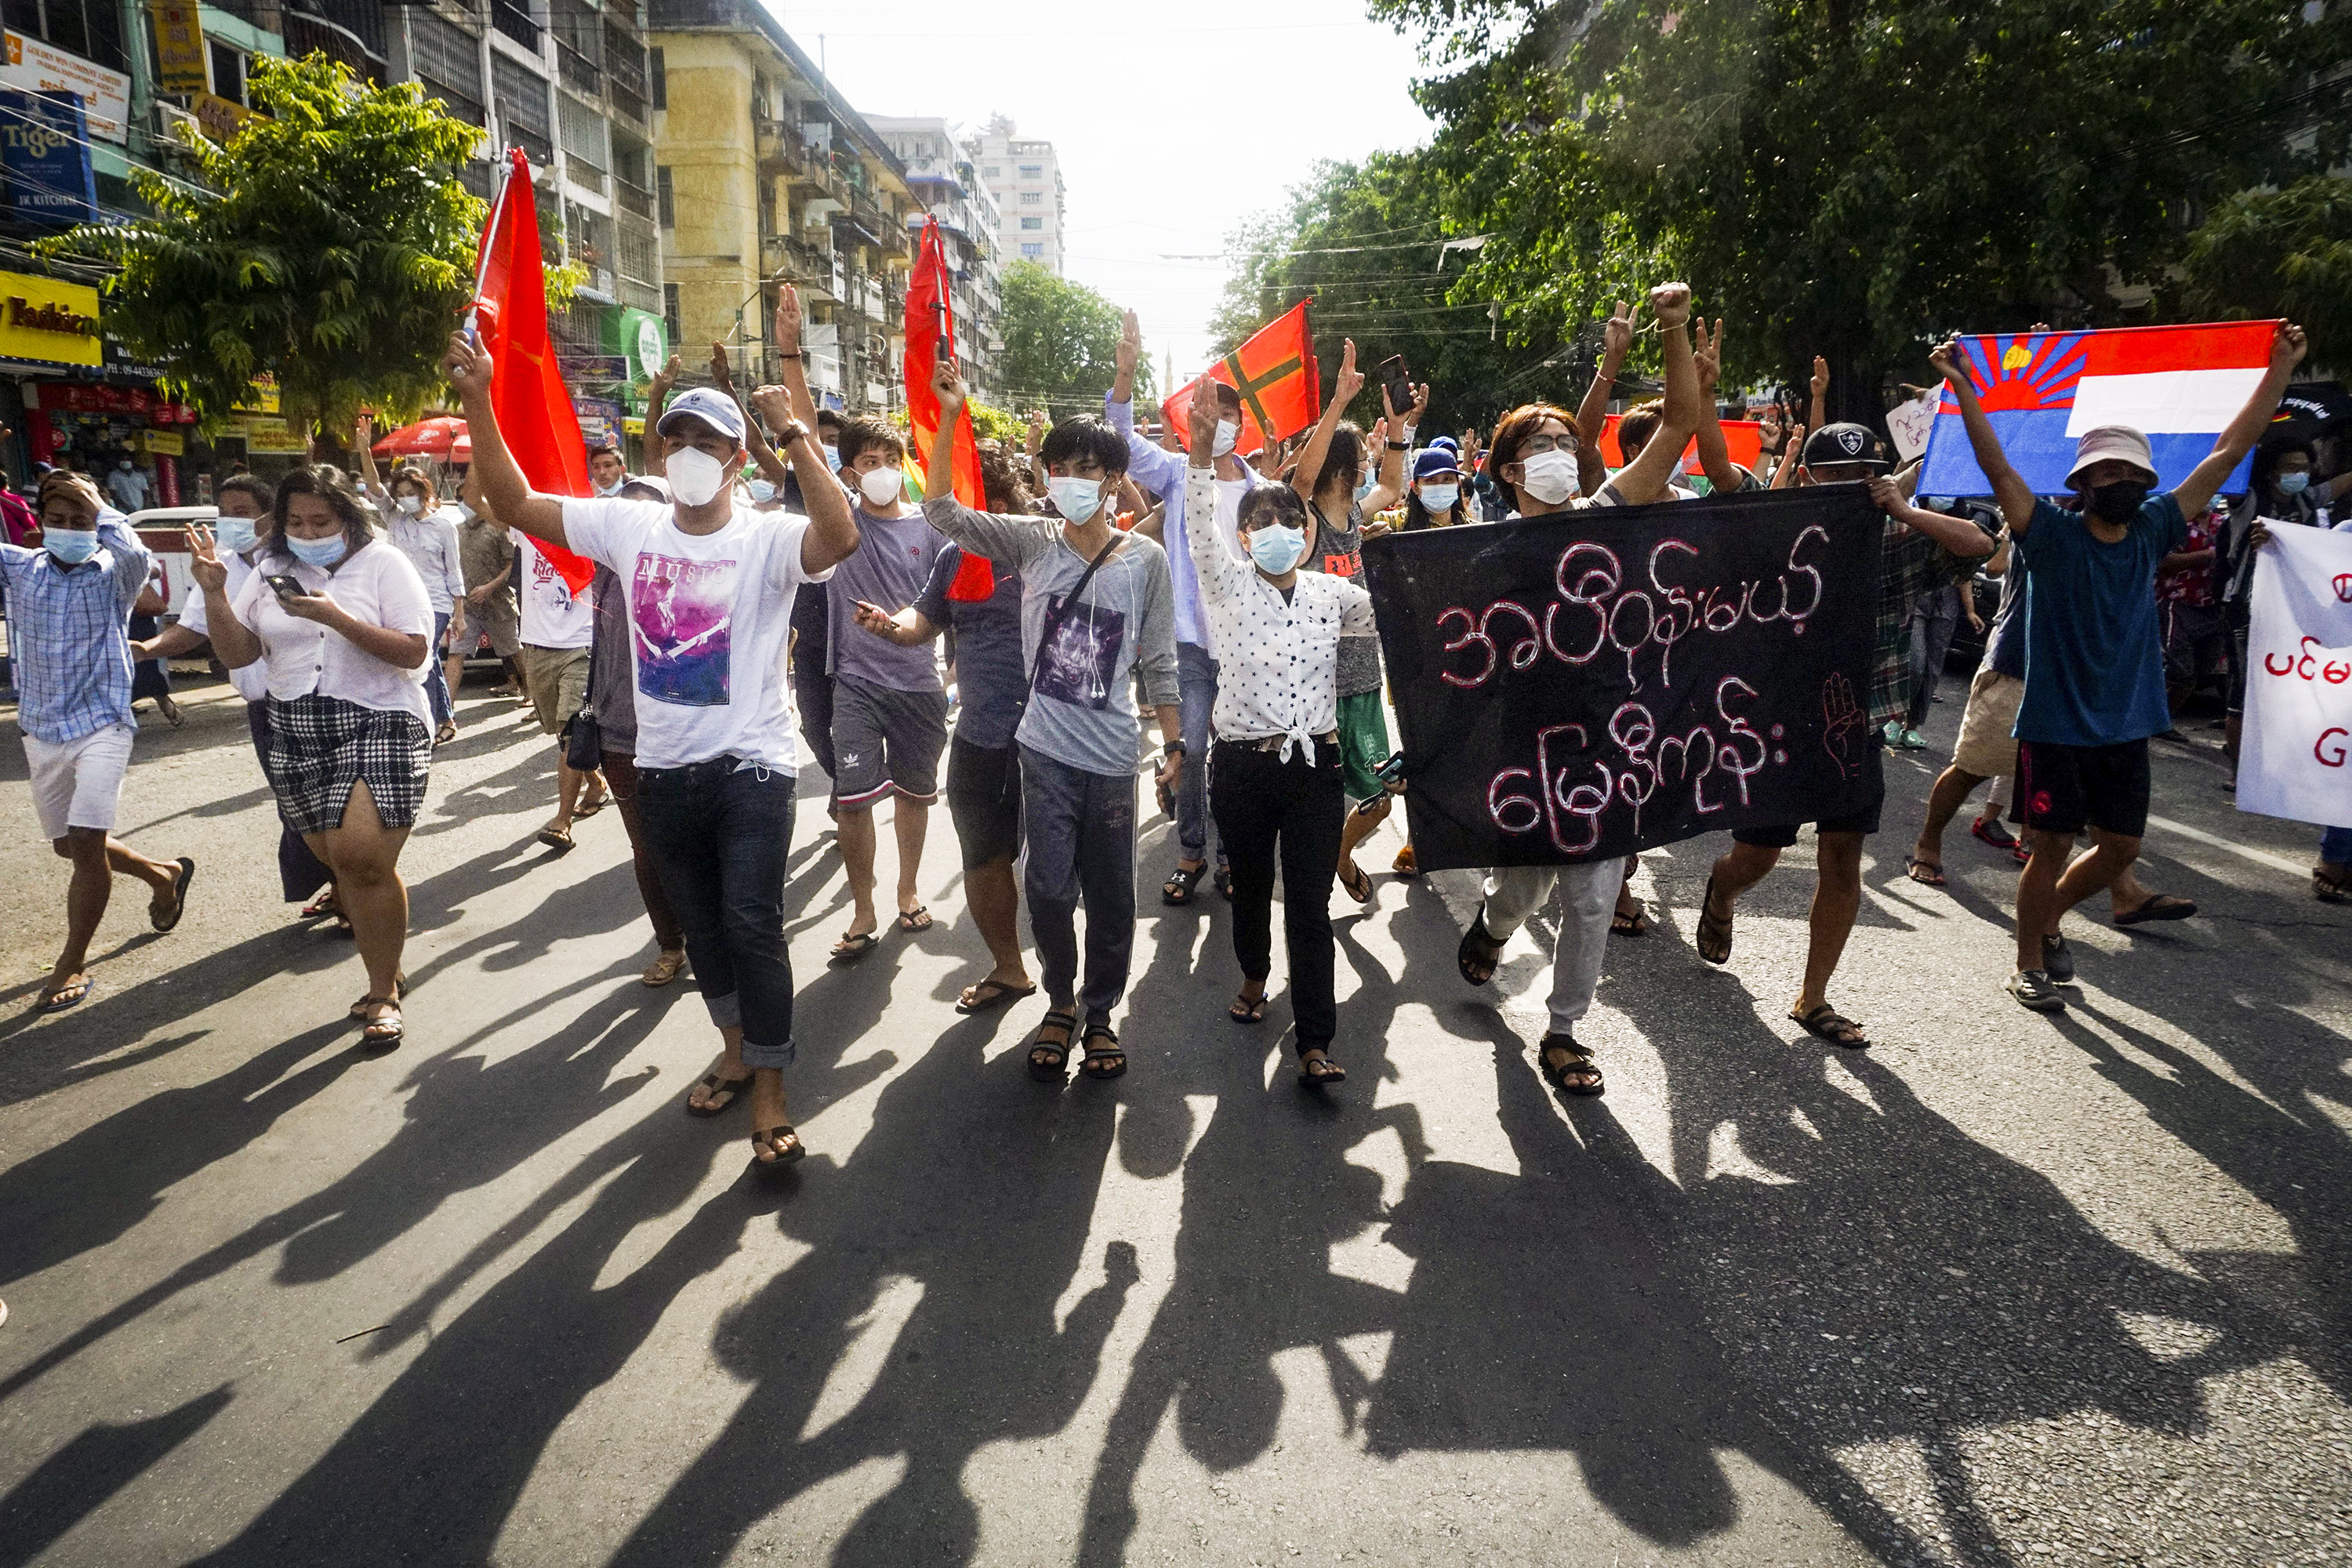 Masked protestors marching and waving flags in downtown Yangon, Myanmar, on May 6.